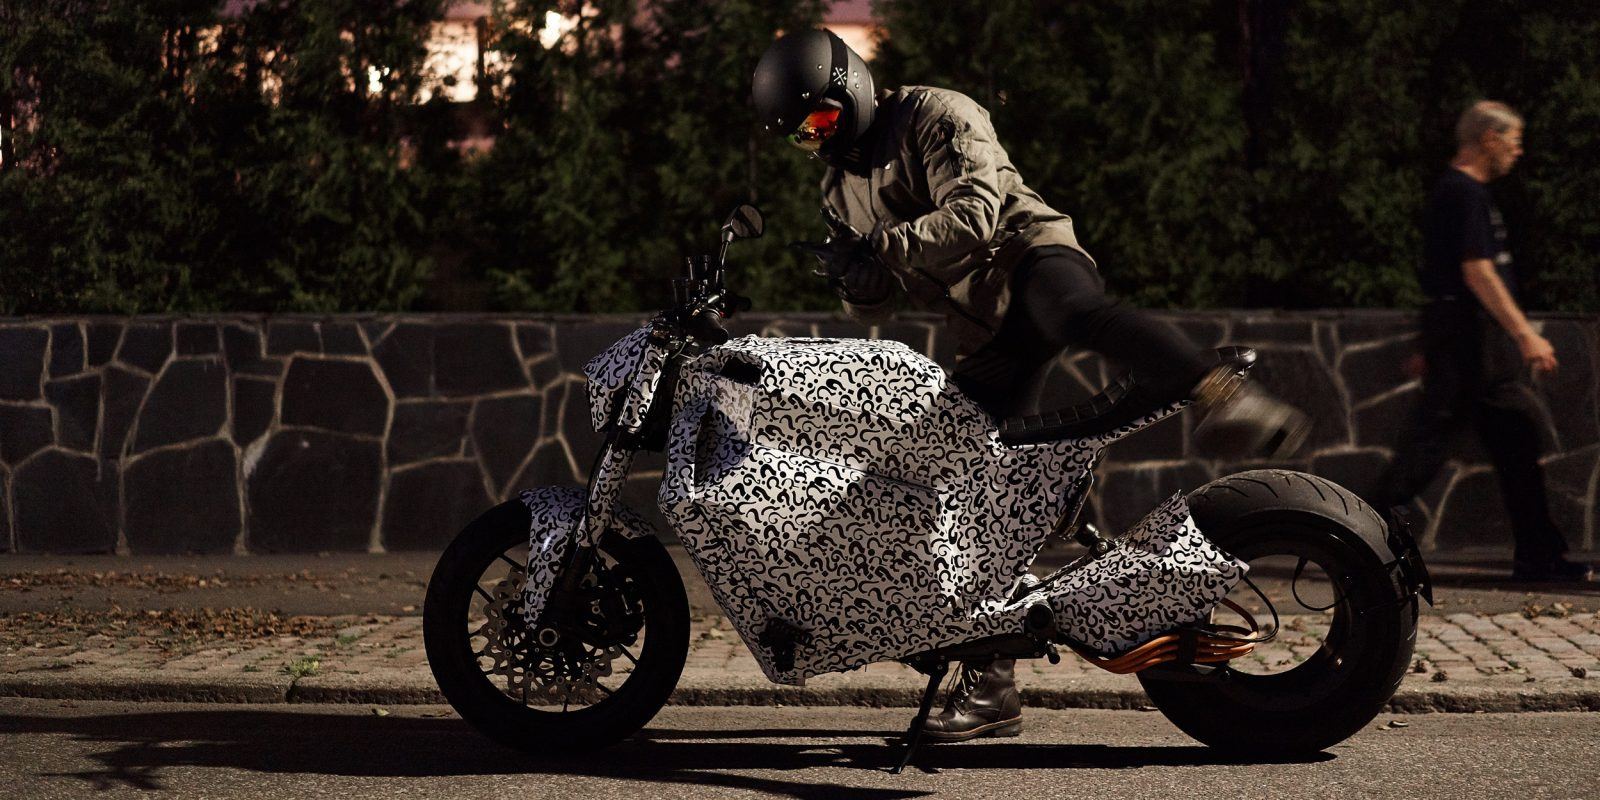 Check out RMK's hubless electric motorcycle seen in camo ahead of release